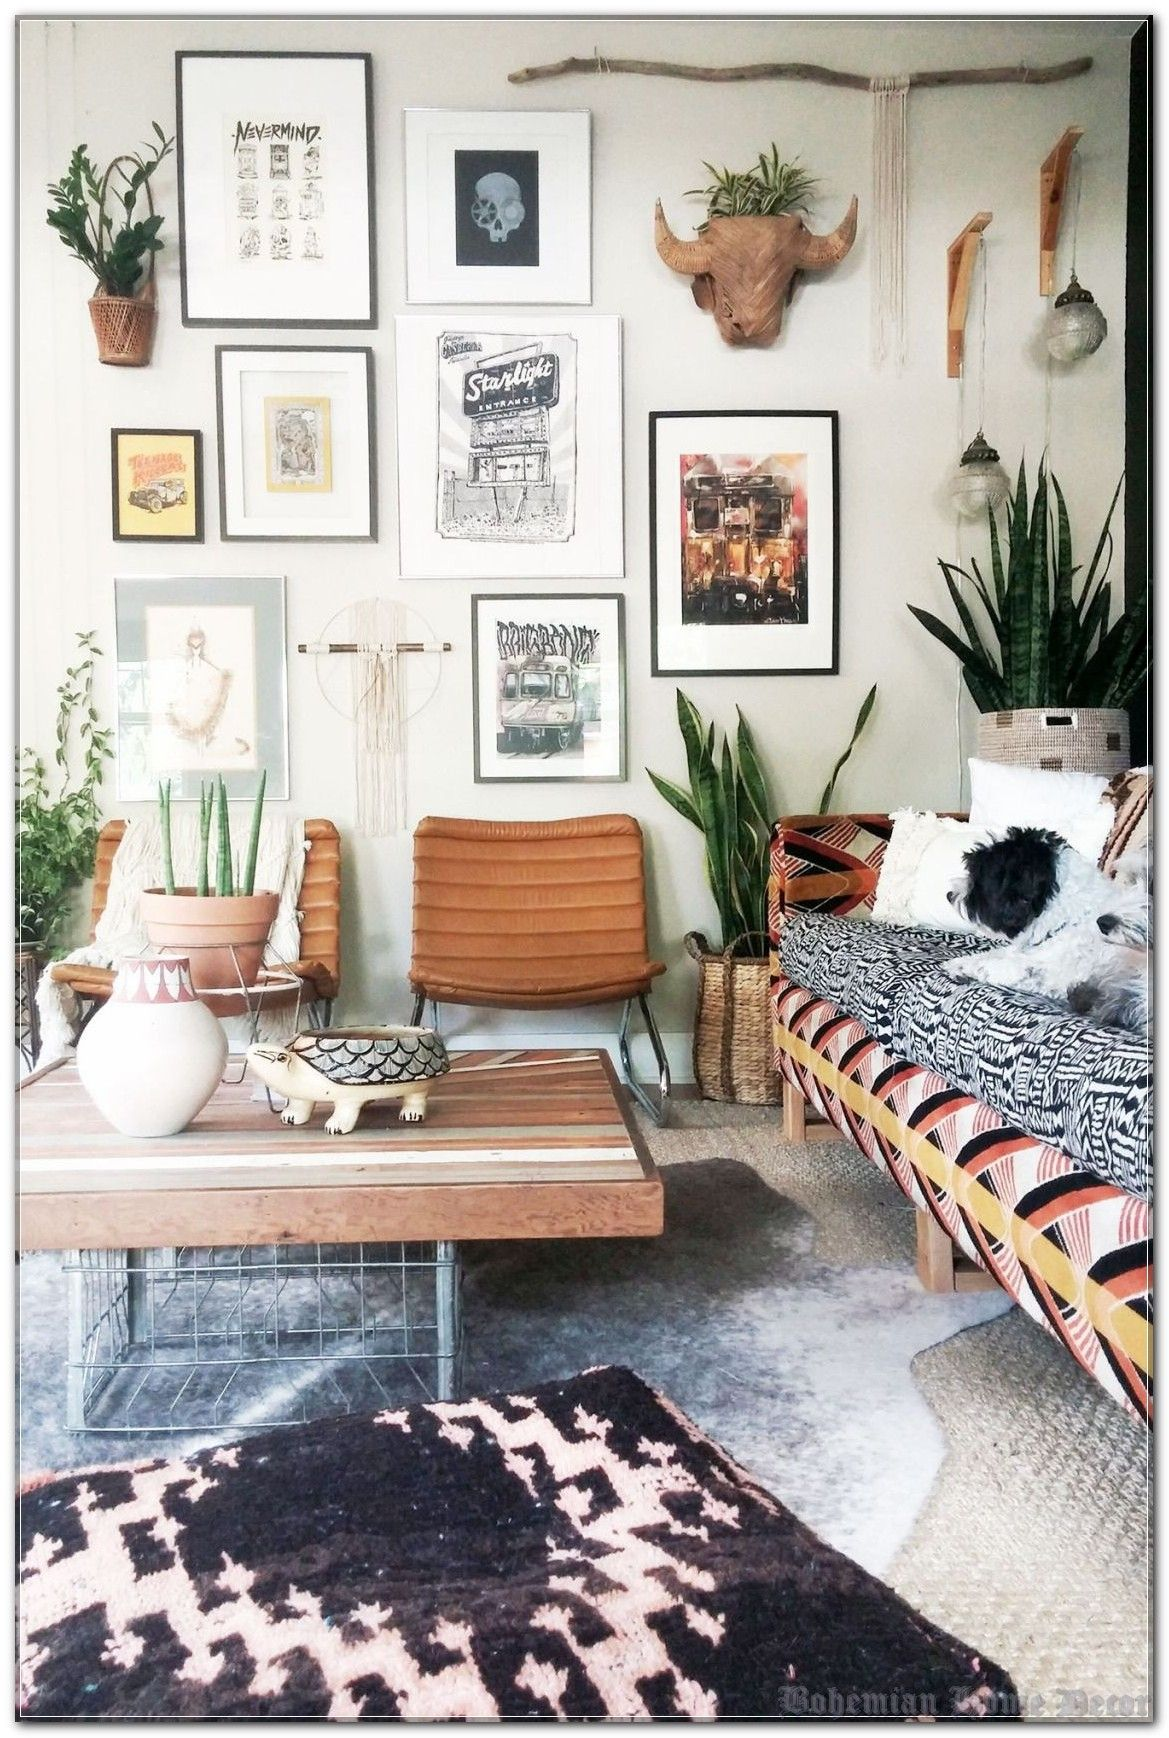 Does Your Bohemian Home Decor Goals Match Your Practices?